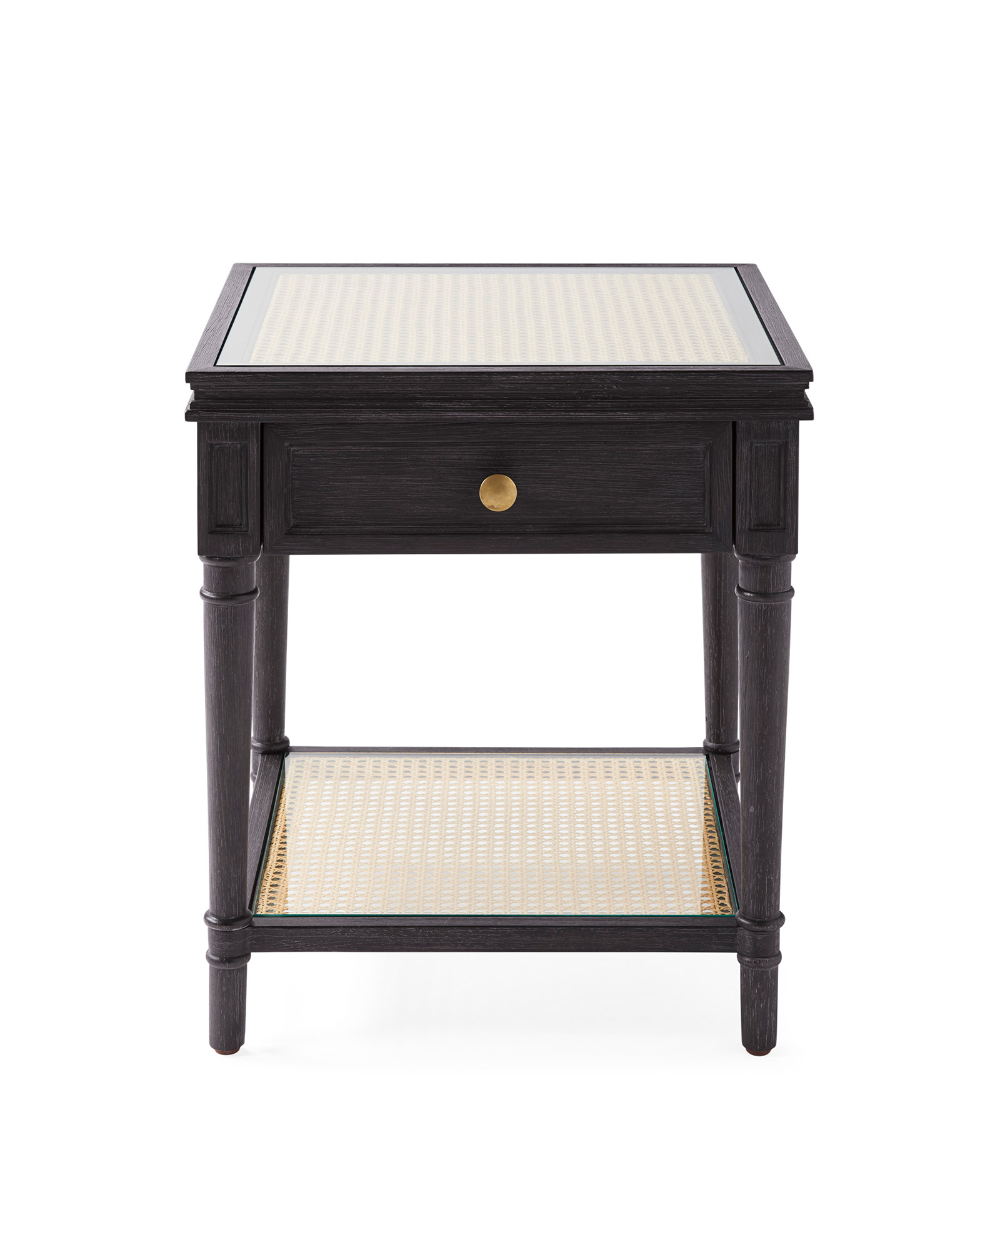 Harbour Cane Nightstand Side Table Parisian Home Decor Cane Furniture [ 1250 x 1000 Pixel ]